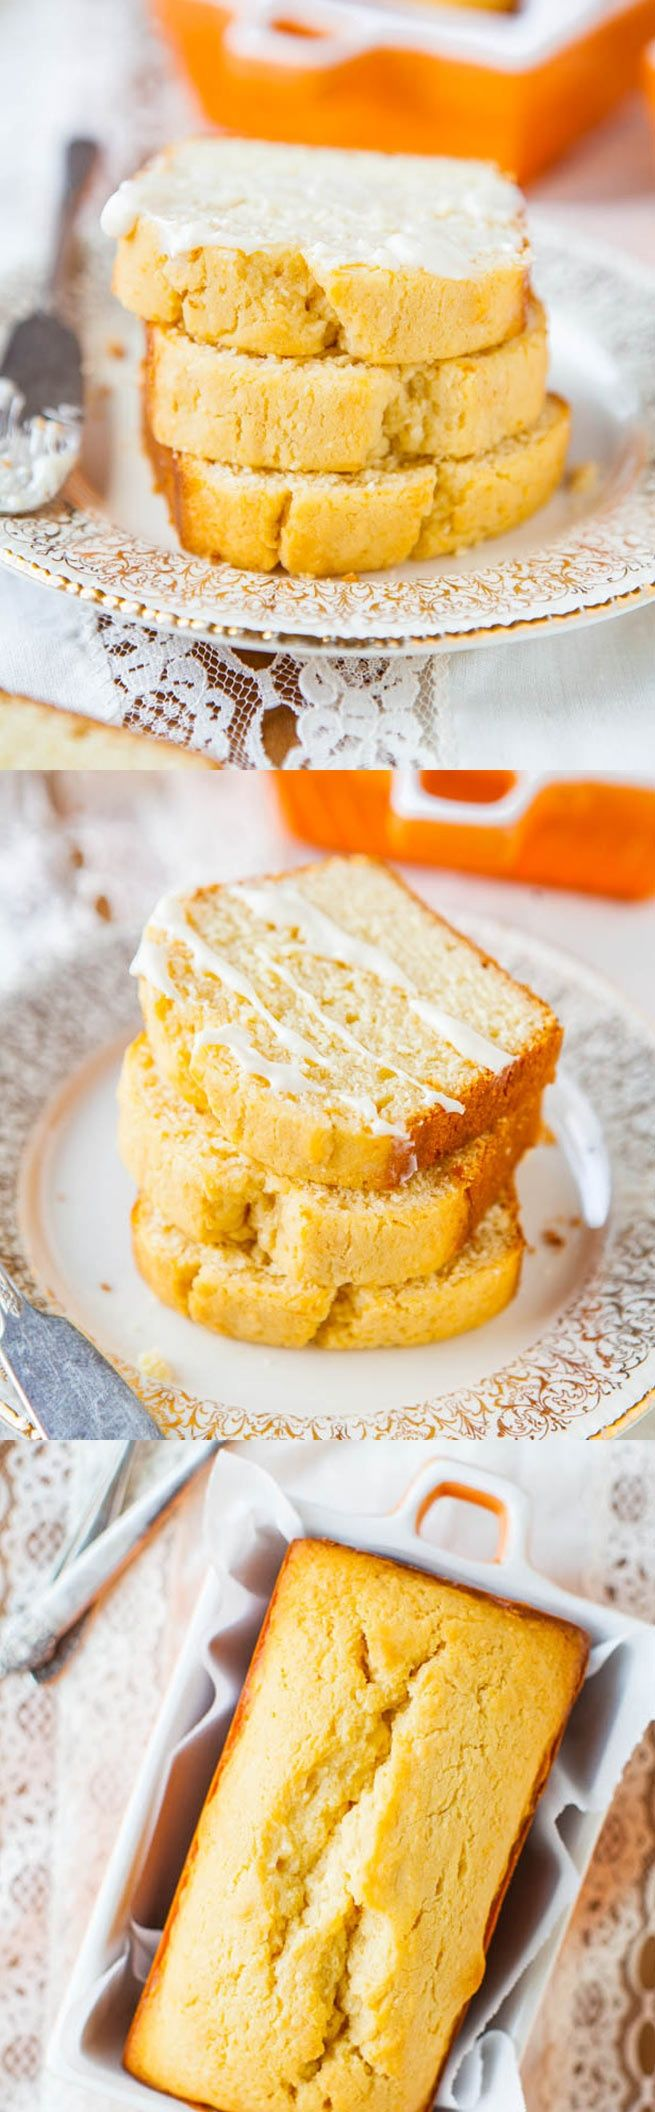 Mini Cream Cheese Pound Cakes with Vanilla Cream Cheese Glaze - Finally pound cake that's NOT dry thanks to the cream cheese! Recipe makes 2 mini cakes (since swimsuit season is coming!)